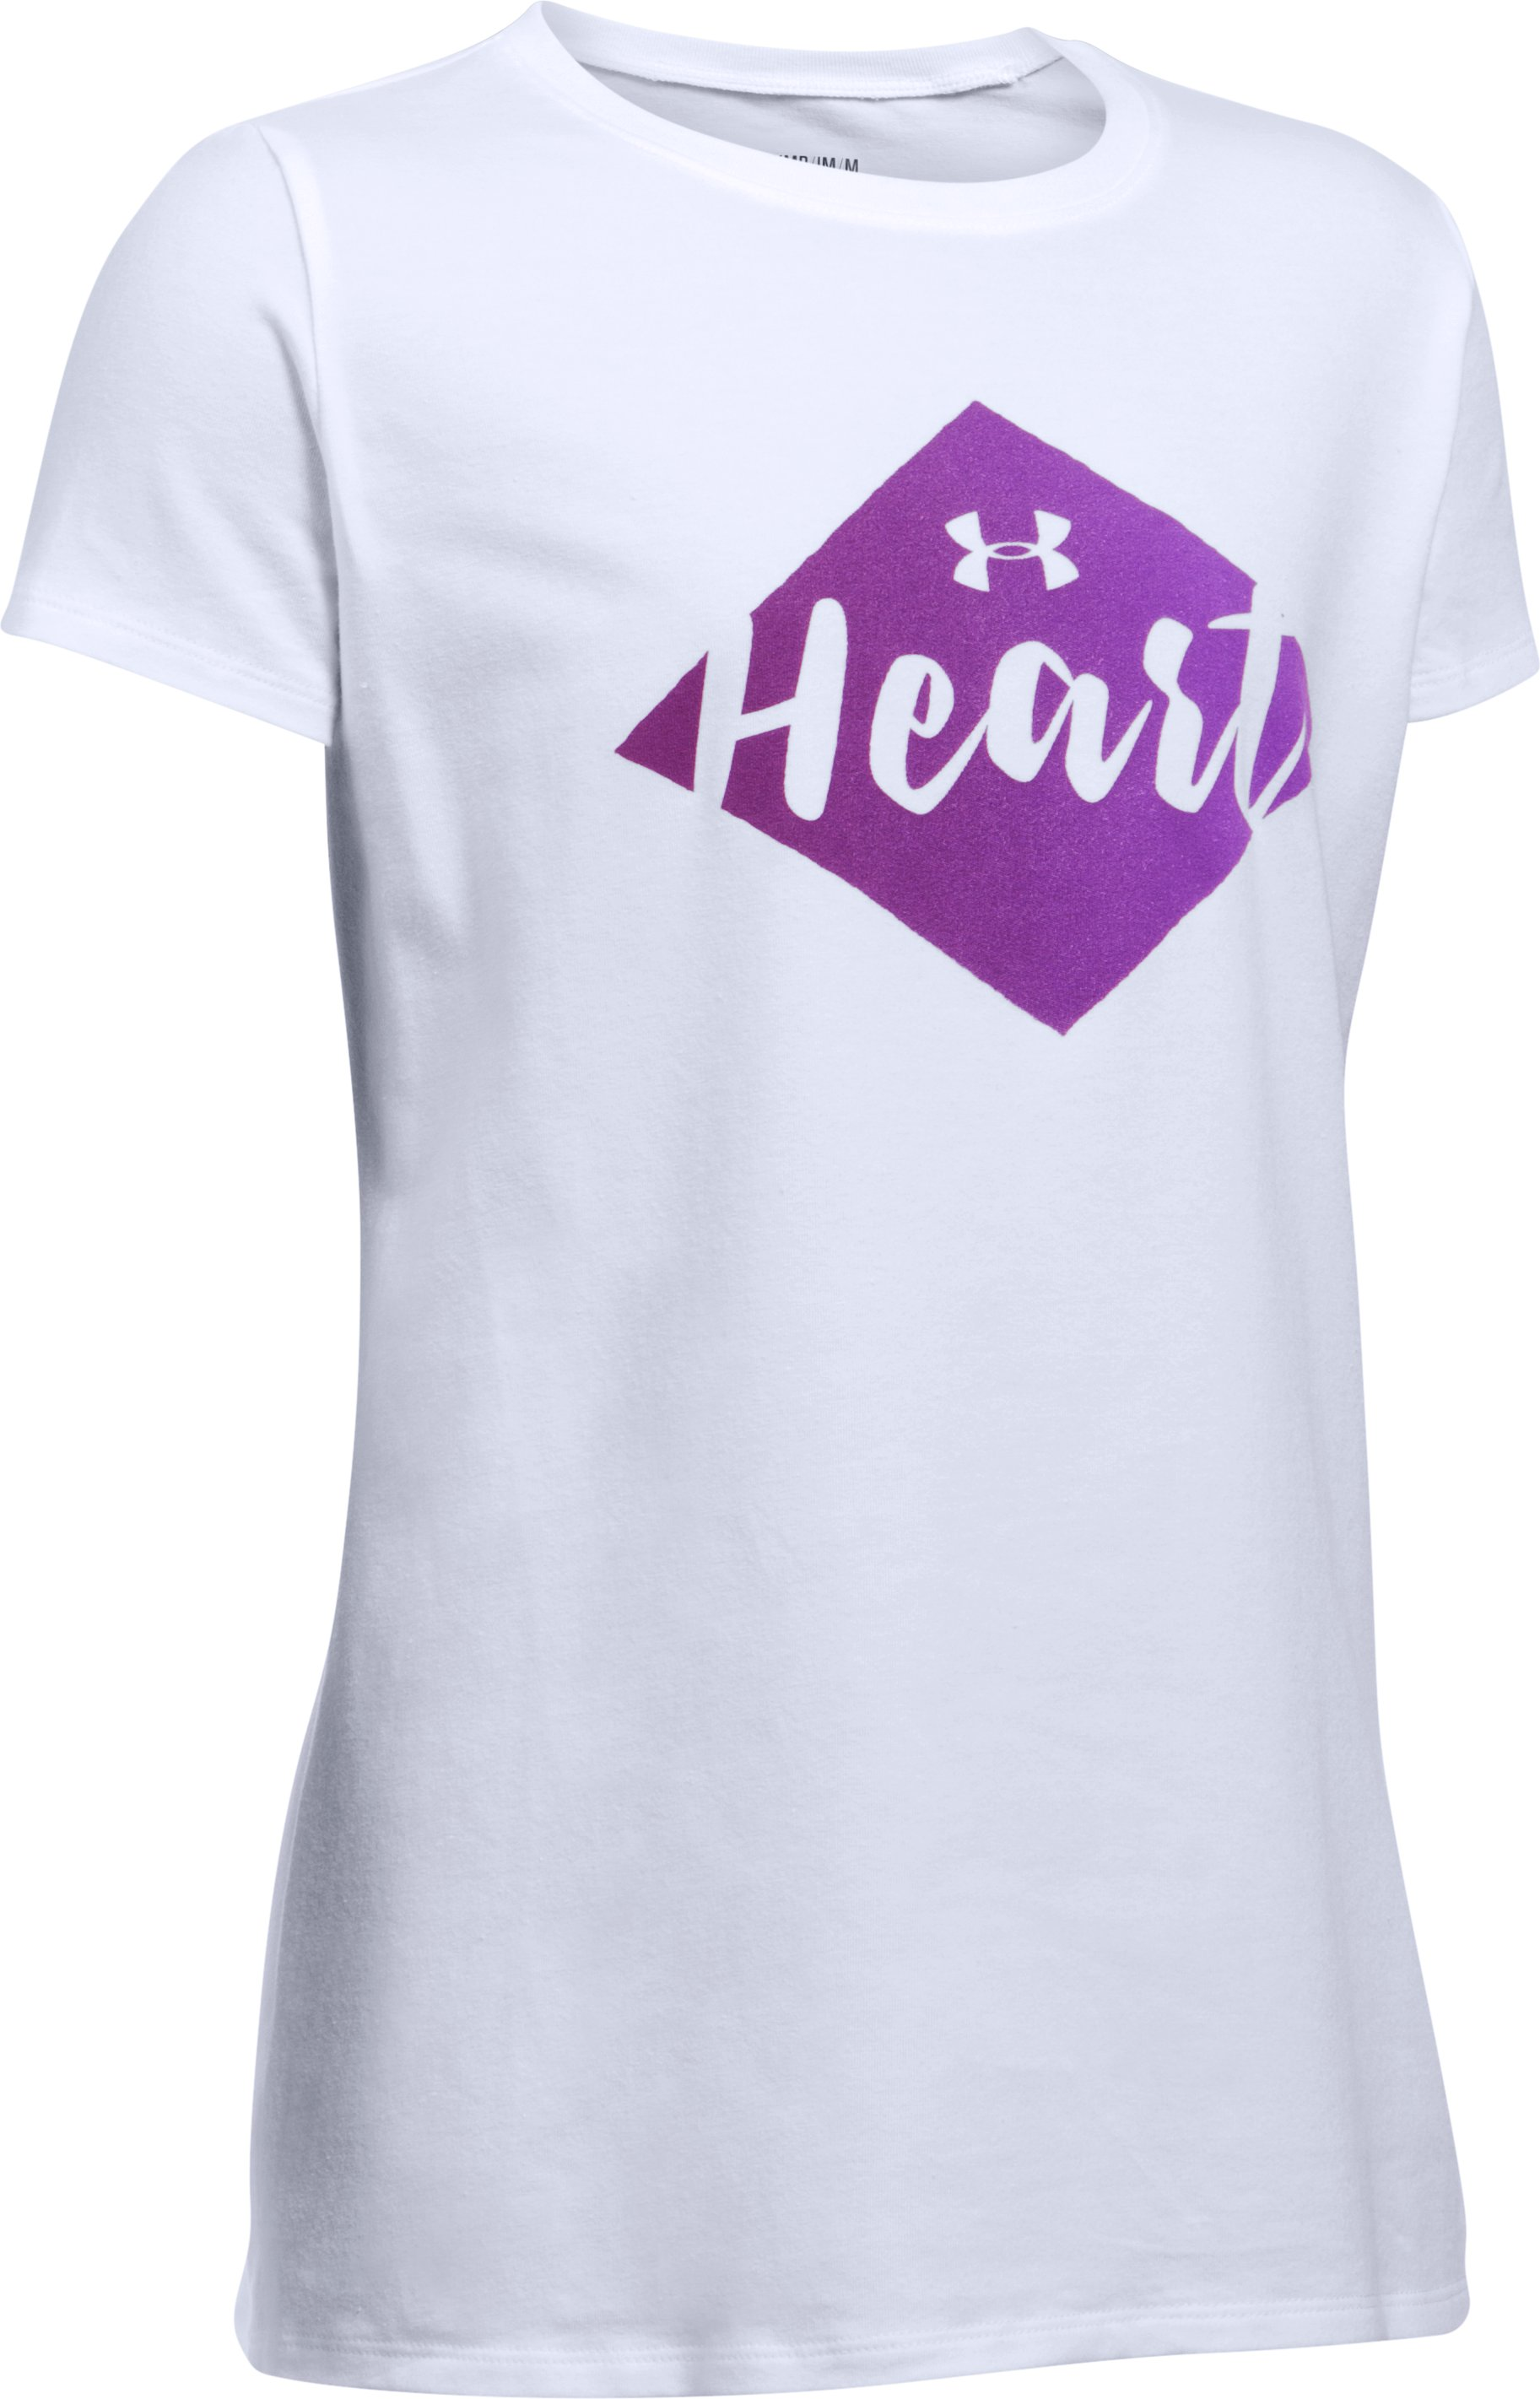 She Plays We Win UA Heart T-Shirt, White